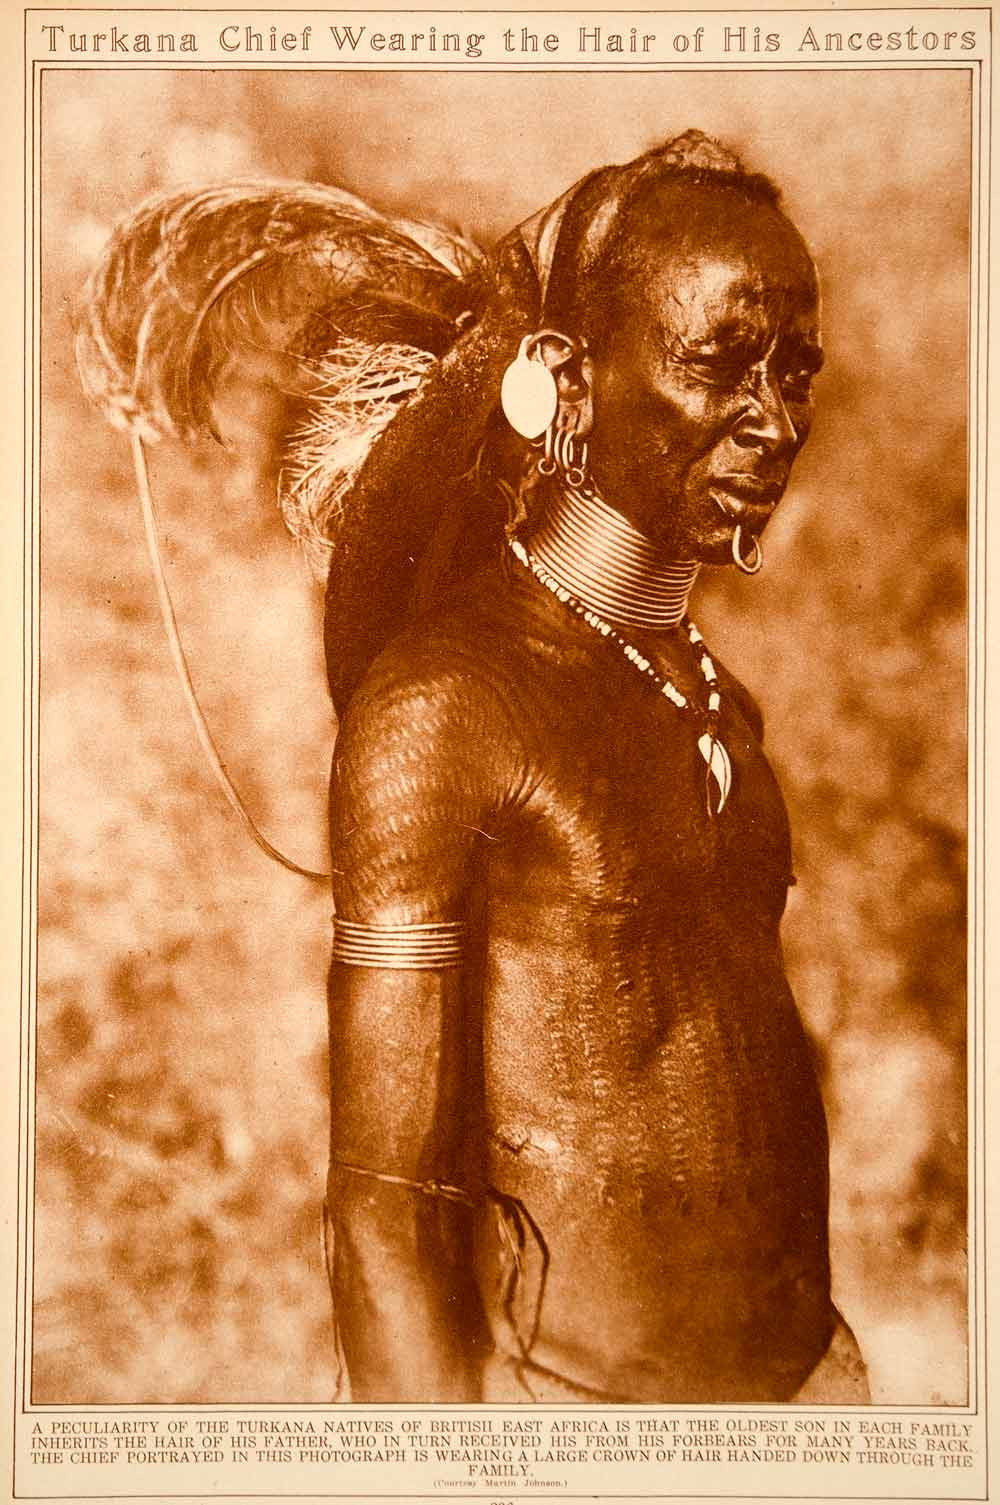 indigenous people essay Indigenous people of australia, also known as aboriginal australians from as early as 1789, are defined as the original inhabitants of the australian continent, as well as the surrounding islands.